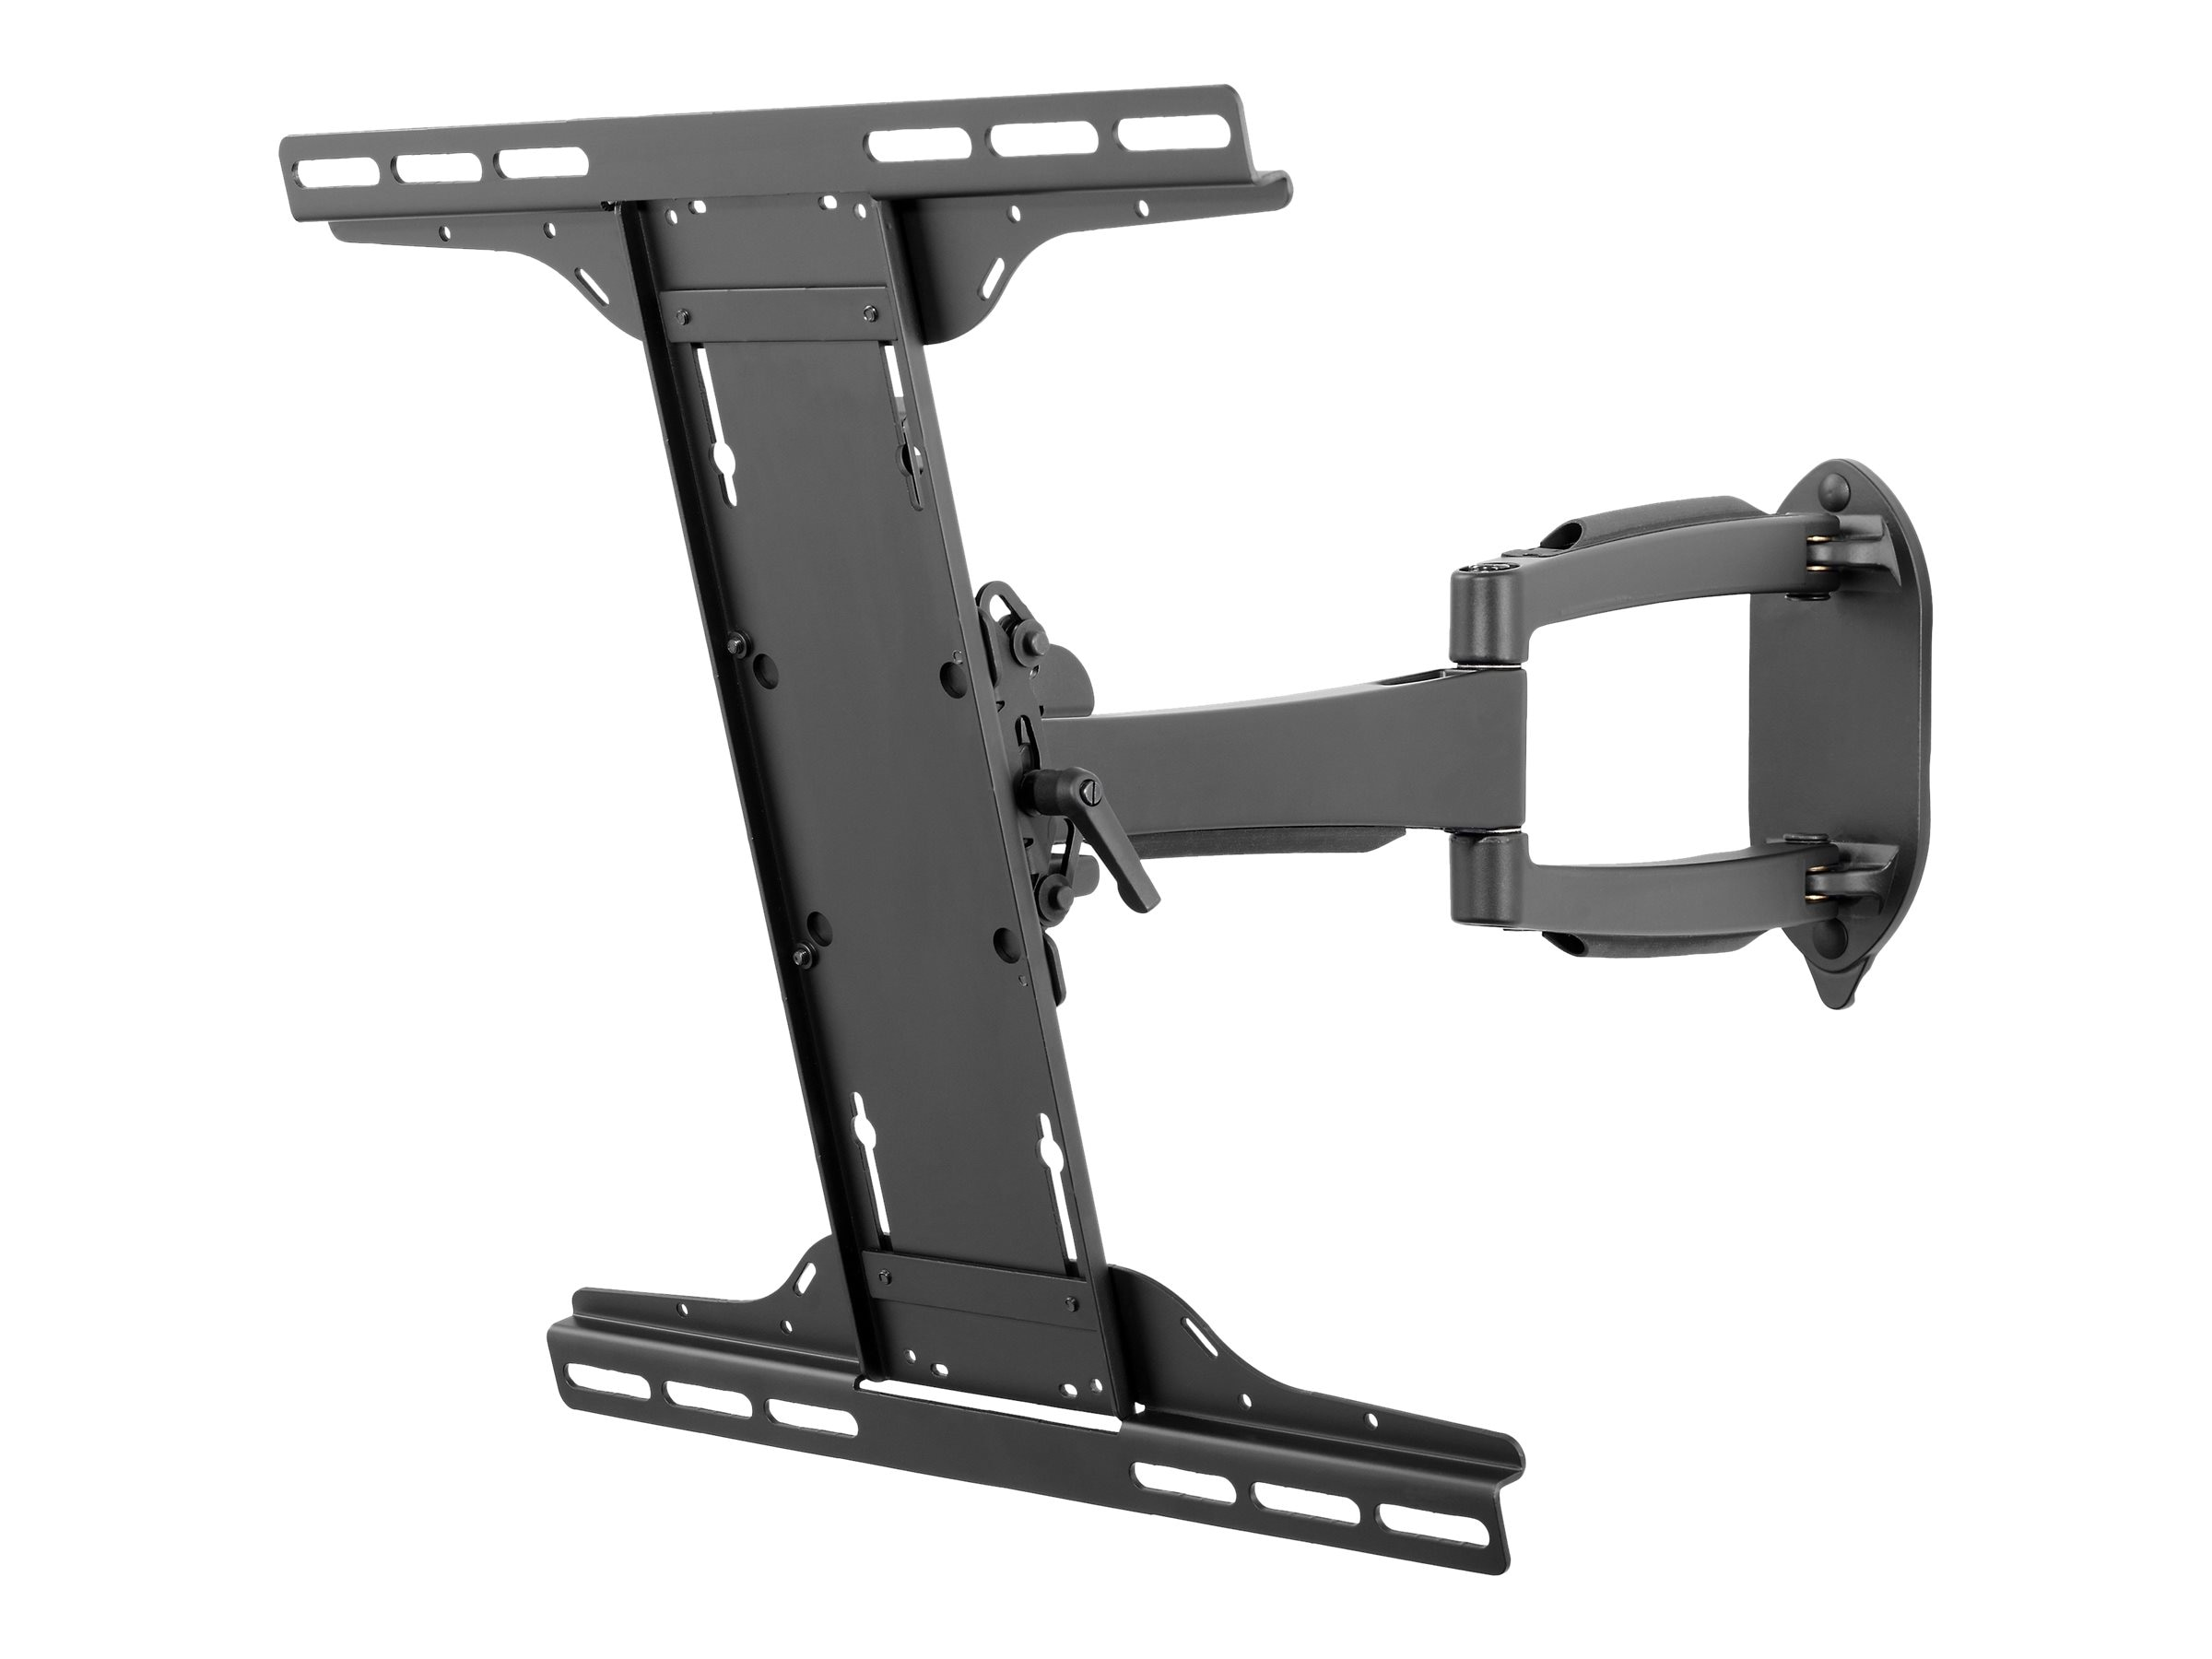 Peerless SmartMount Articulating Wall Arm for 32-50 Displays